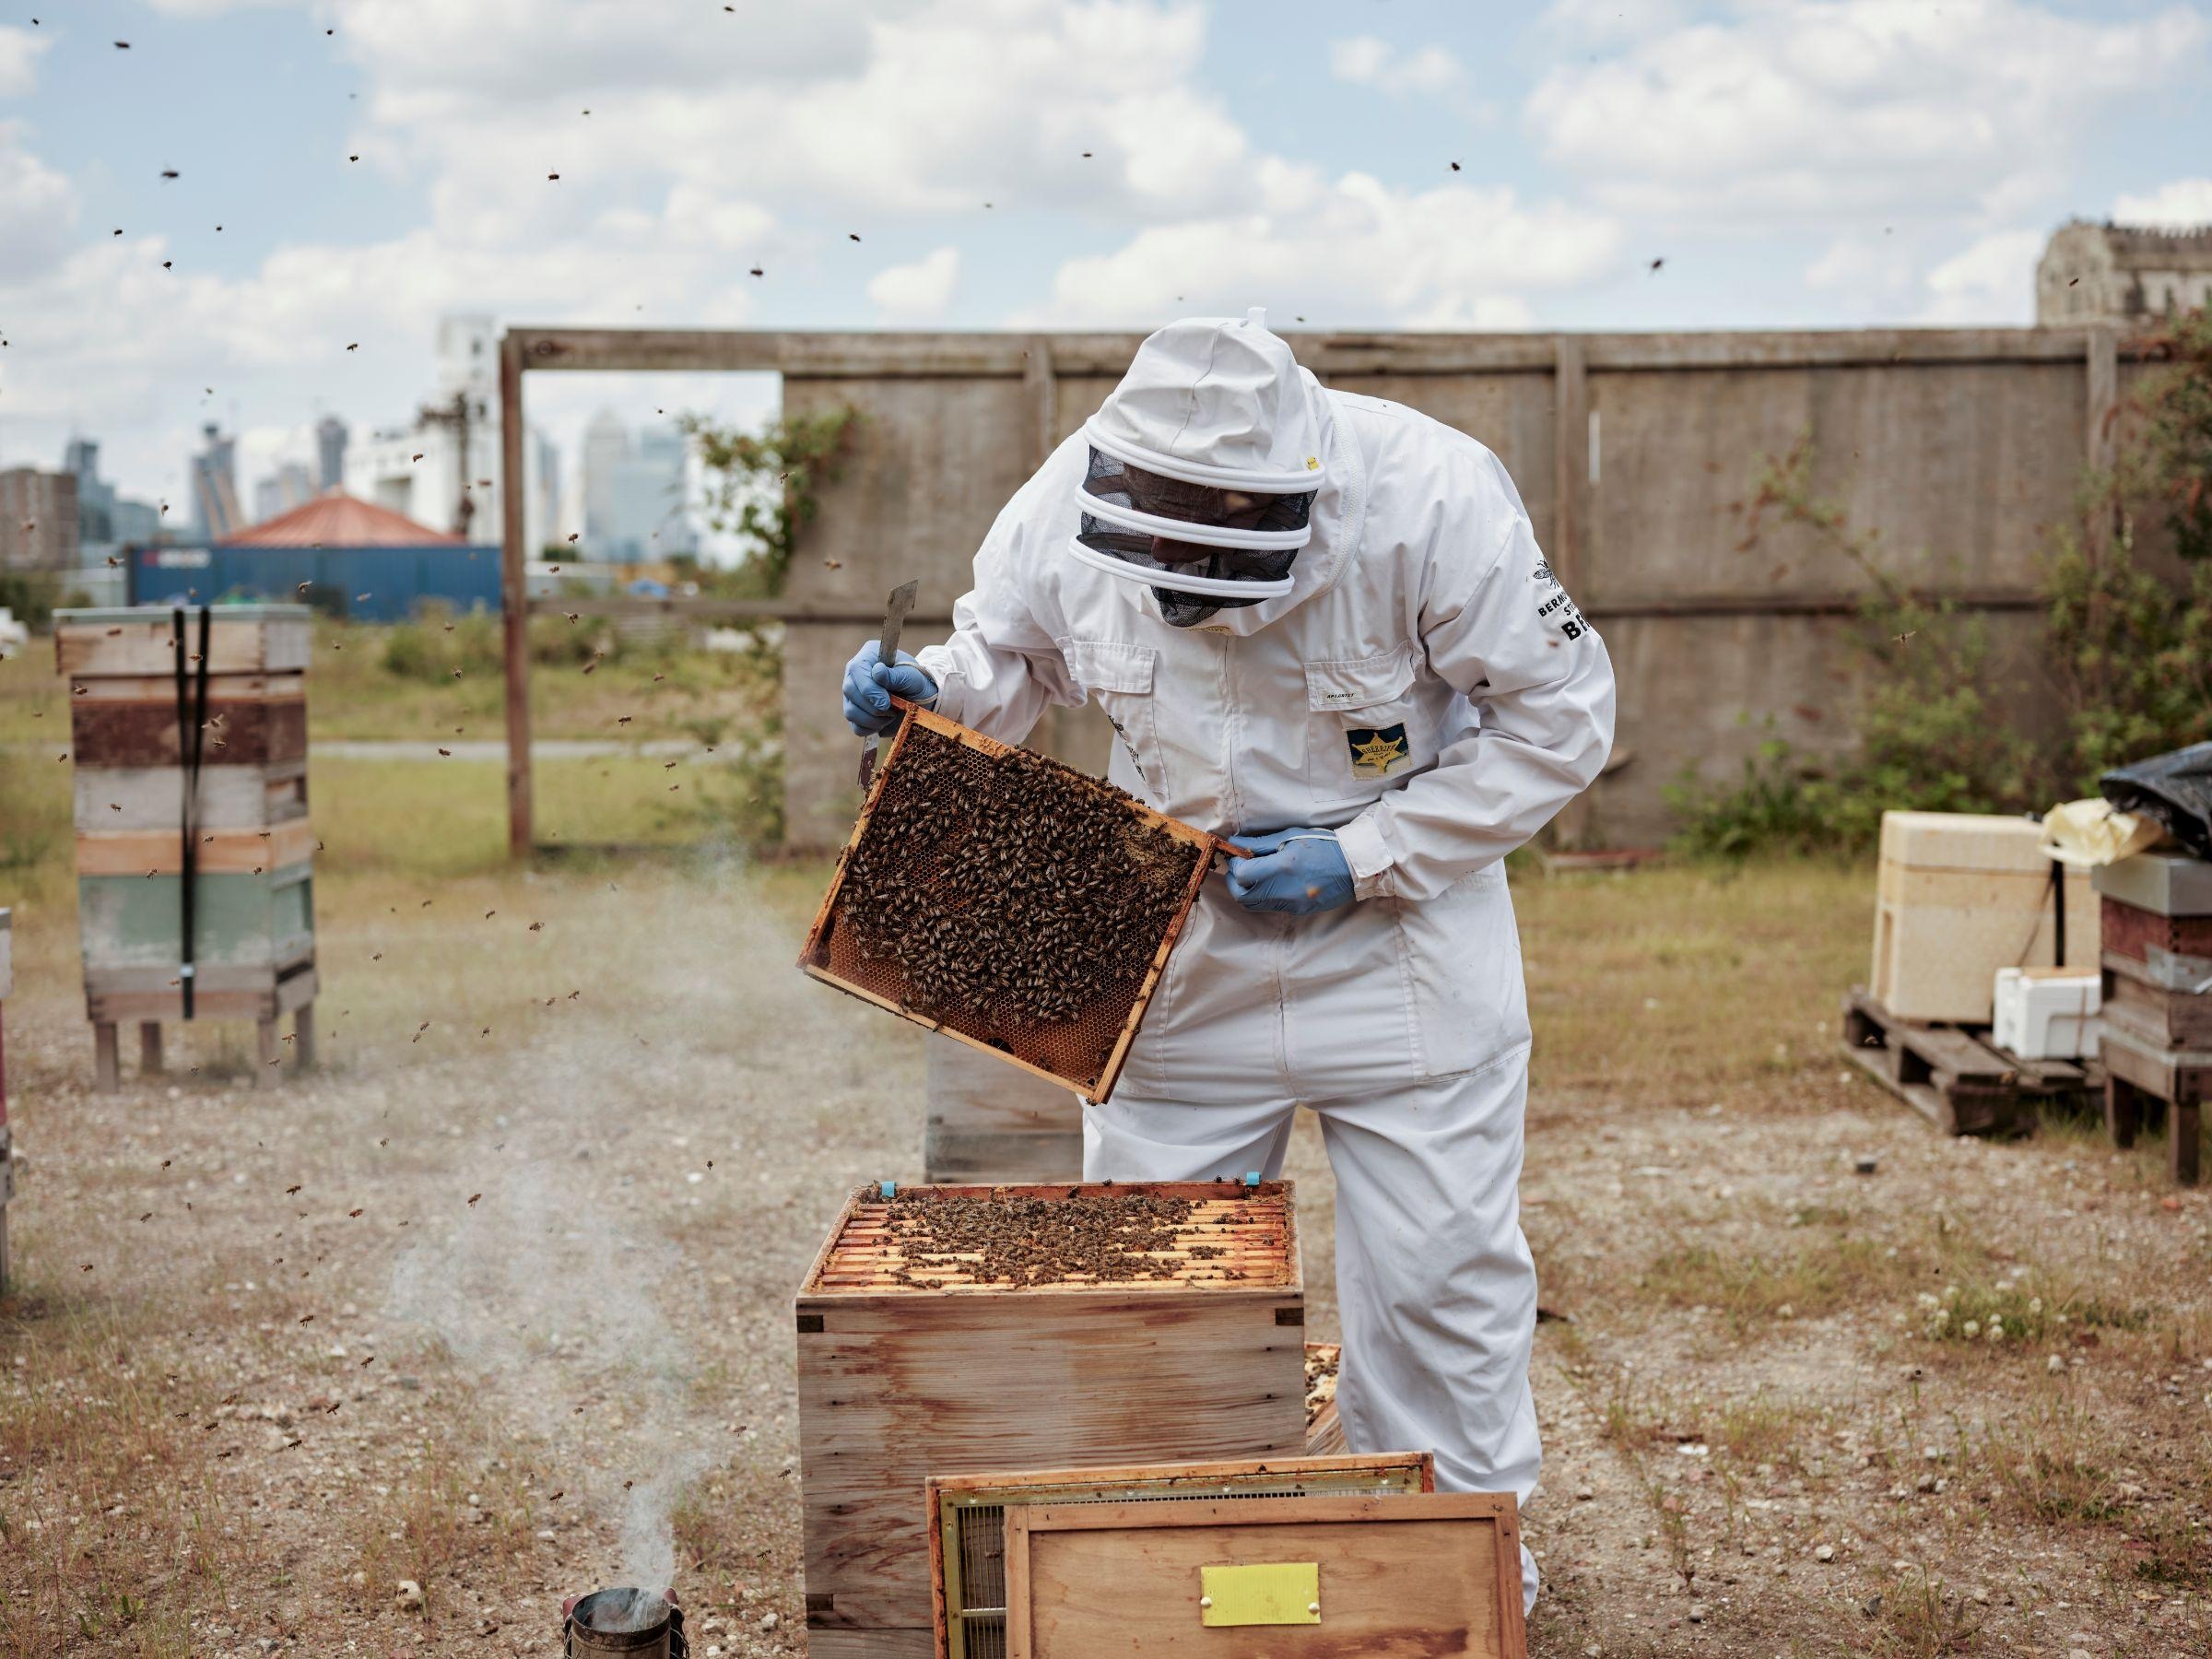 A beekeeper lifting a panel full of bees